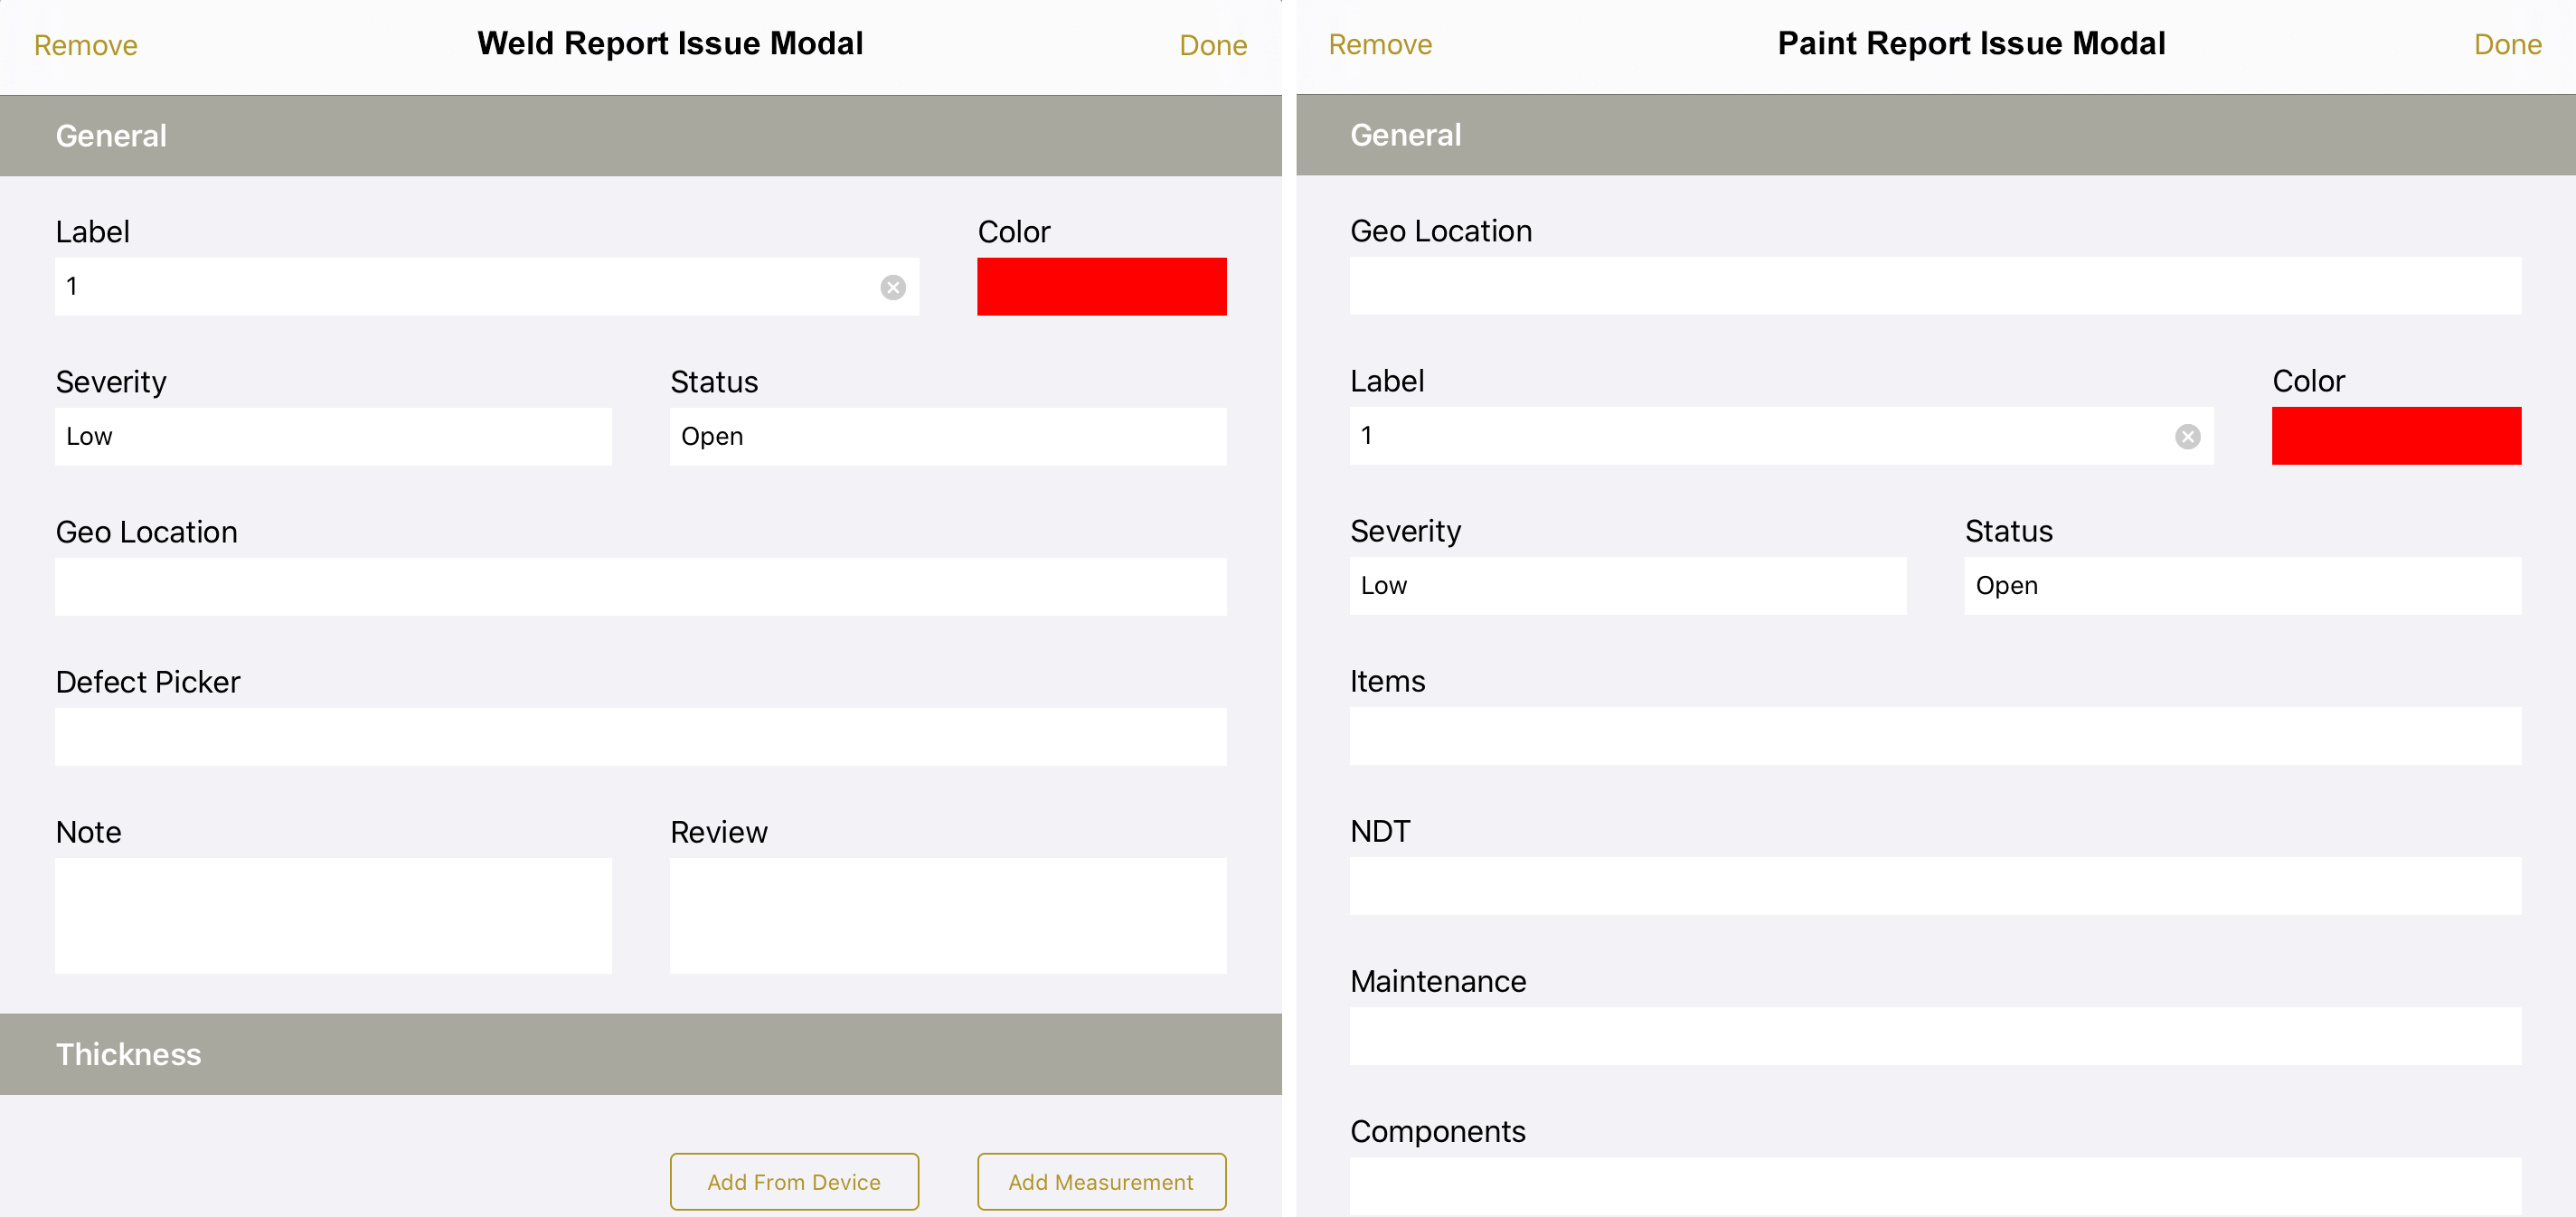 Example of custom issue modal fields per report type